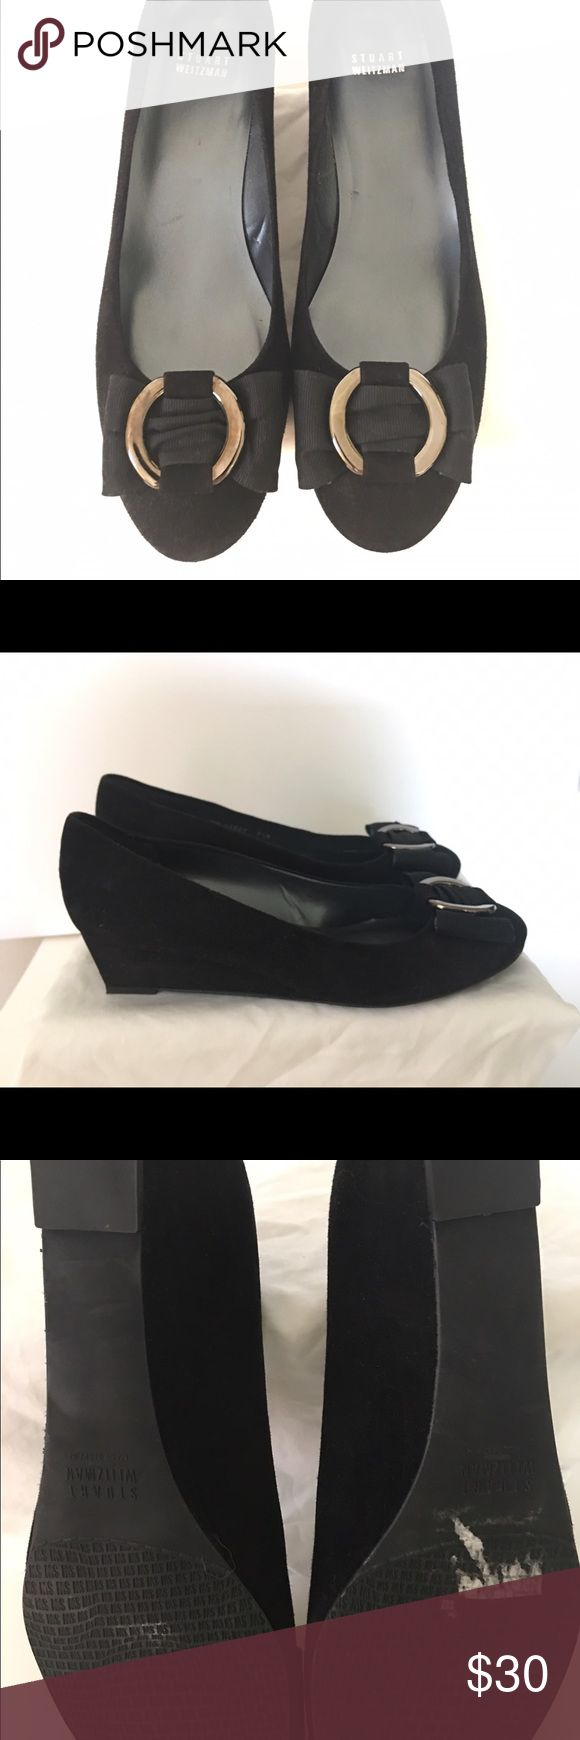 Stuart Weitzman Ballerina Wedge Black suede shoe that i adore but runs a little narrow. black suede with metal detail on ribbon. Beautiful shoe!! Stuart Weitzman Shoes Wedges